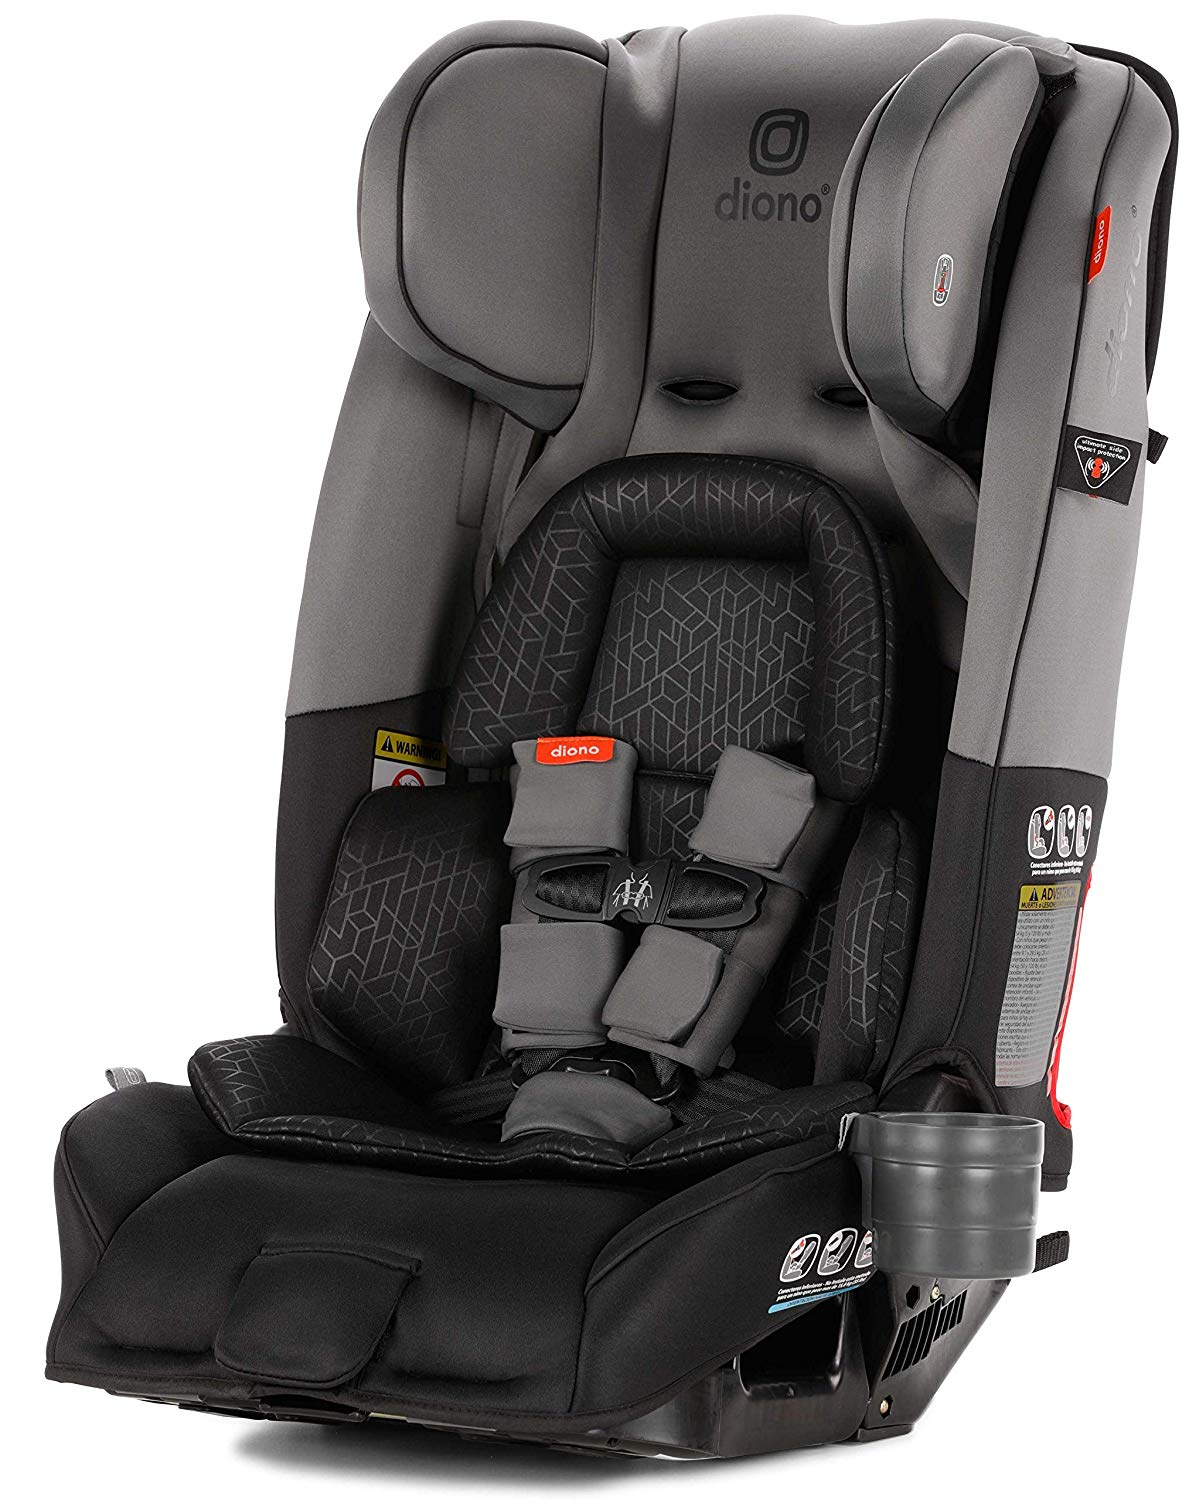 What to look for when buying a car seat for kids?